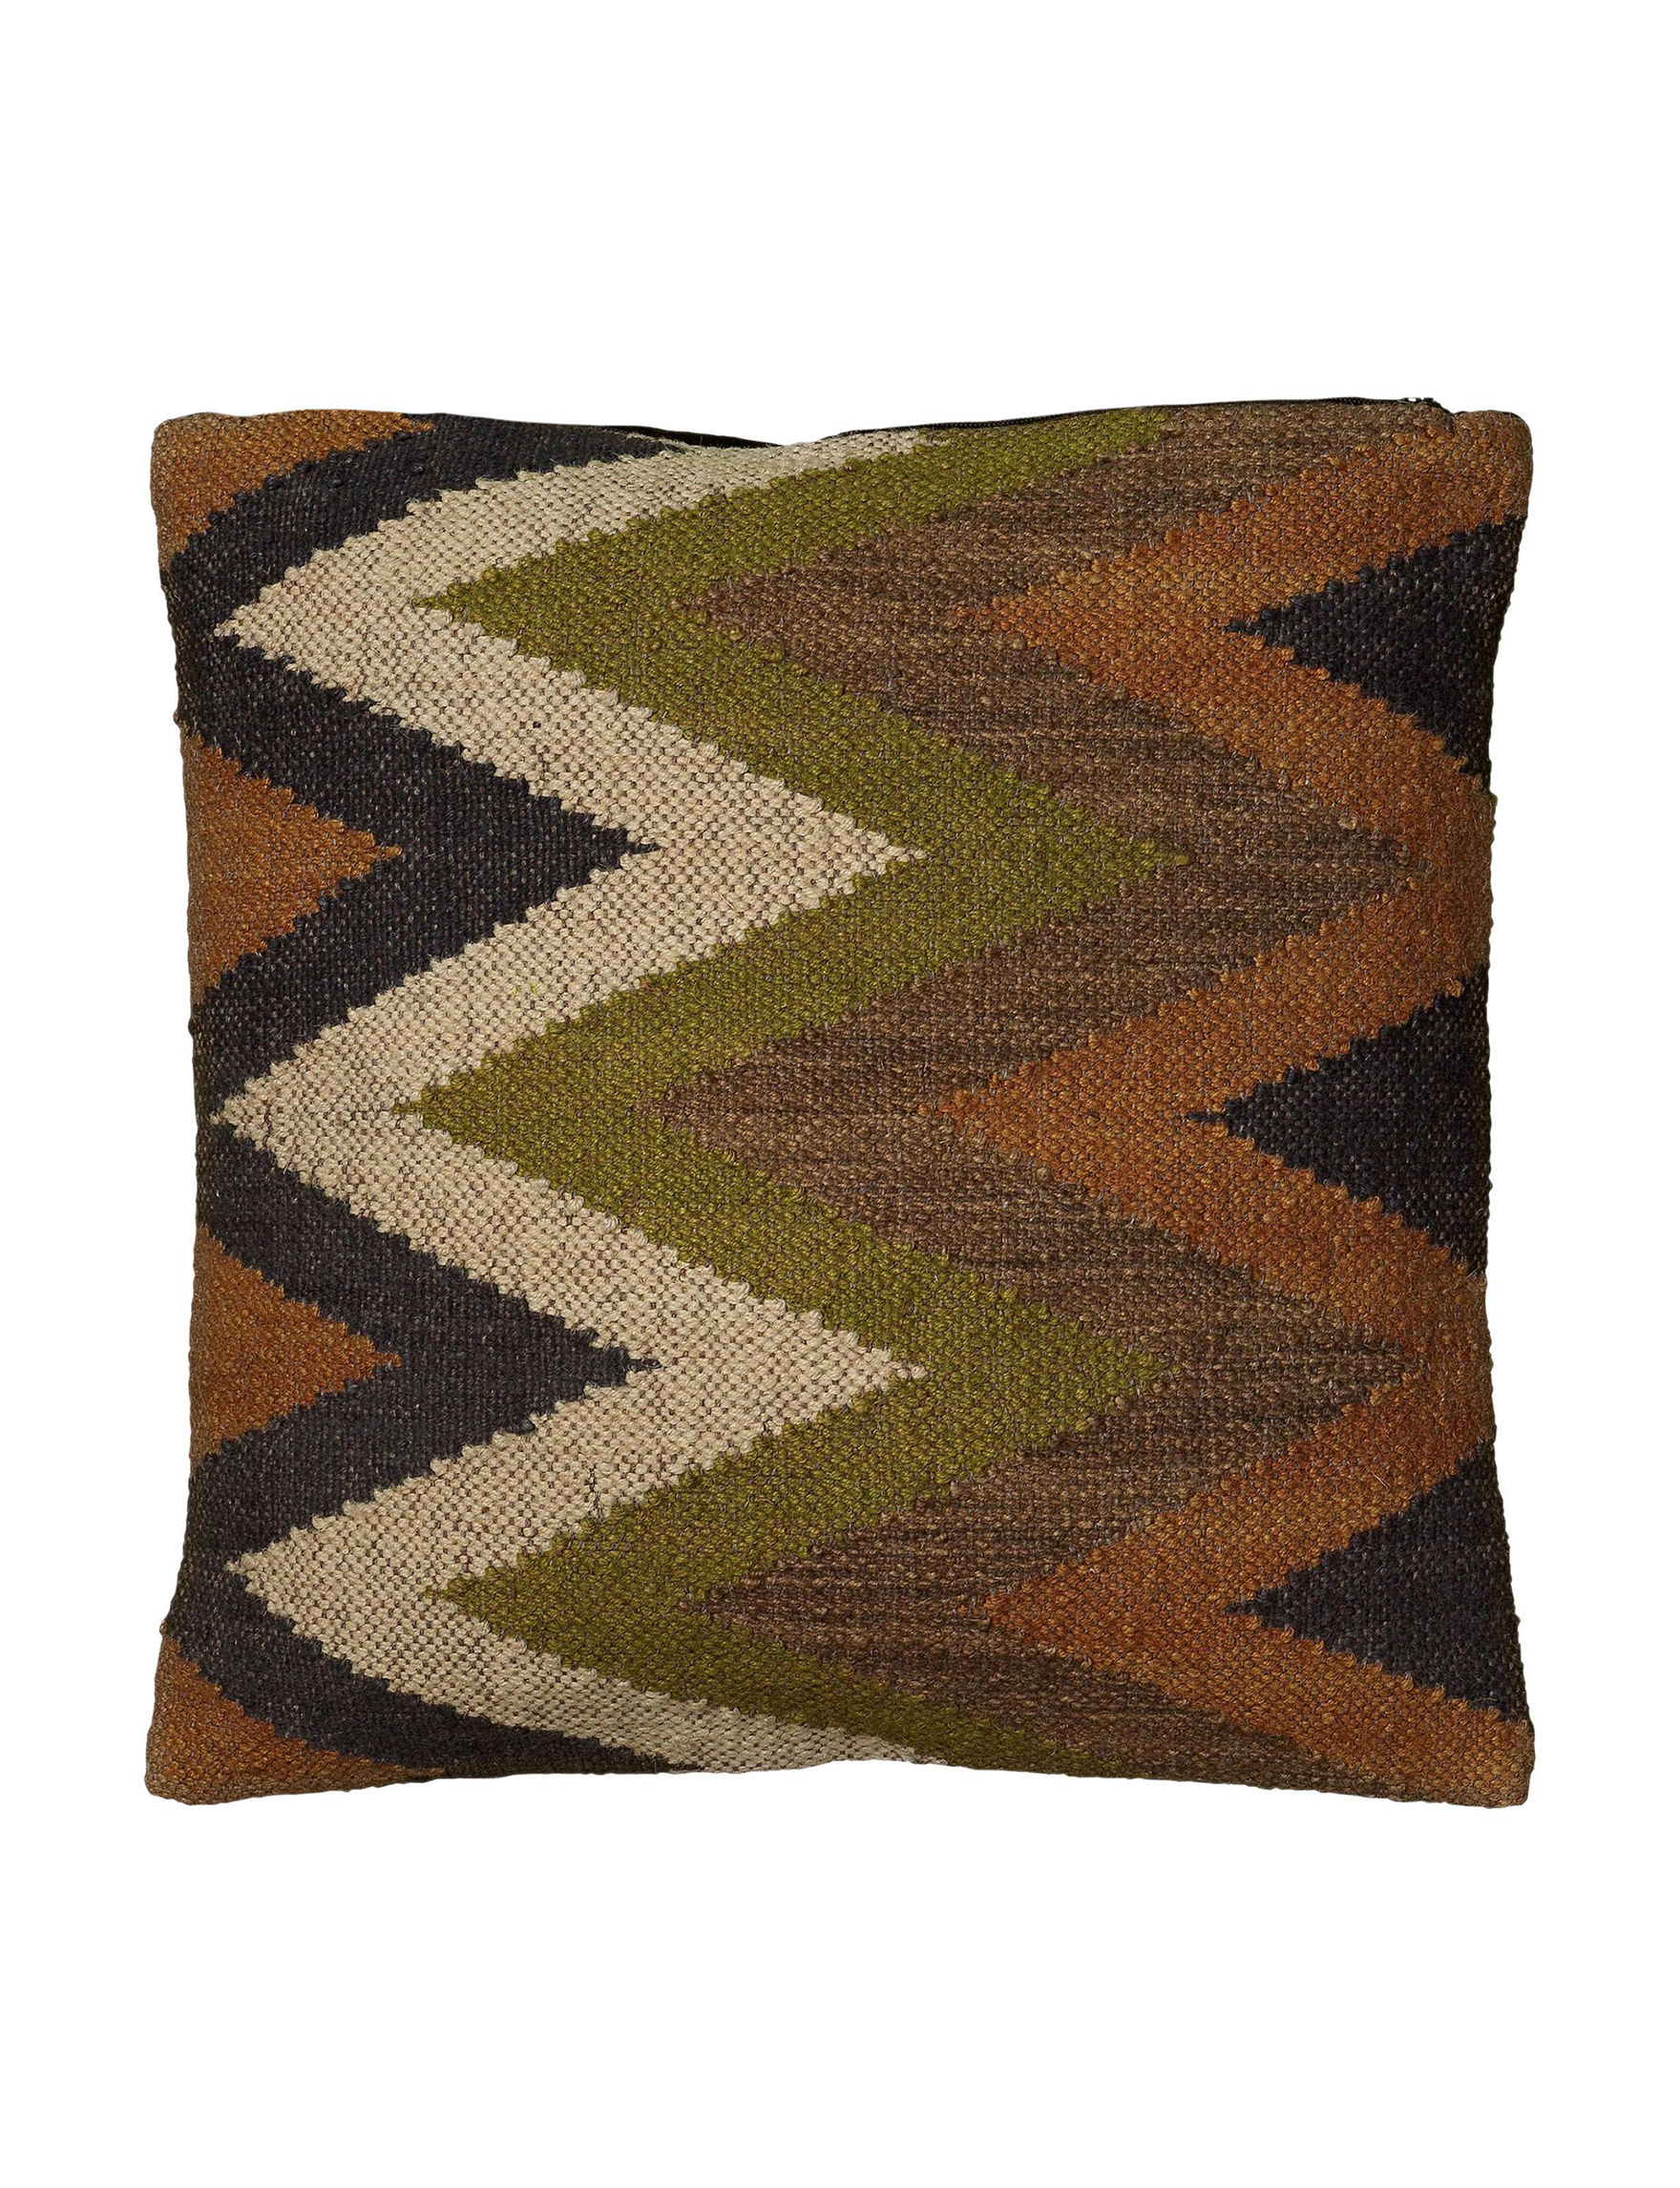 Rizzy Home Green Decorative Pillows